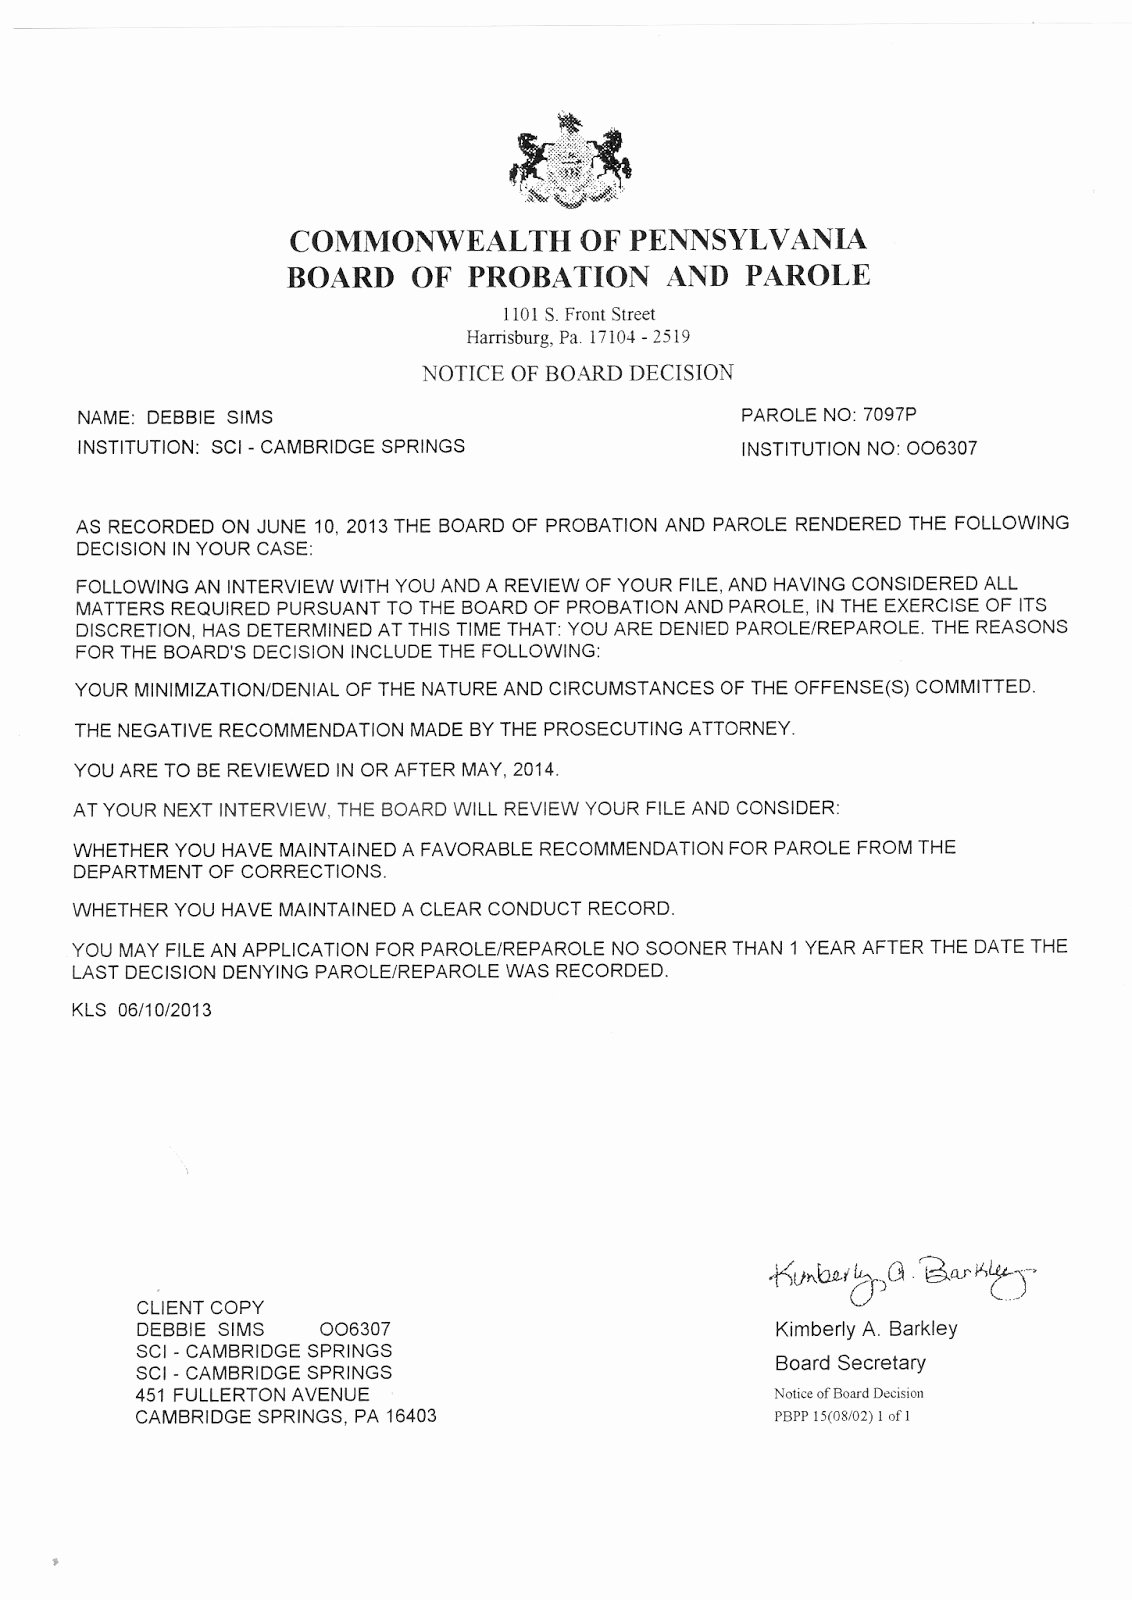 Letter Of Recommendation for Parole Beautiful Free the Move 9 Debbie S 2013 Parole Denial